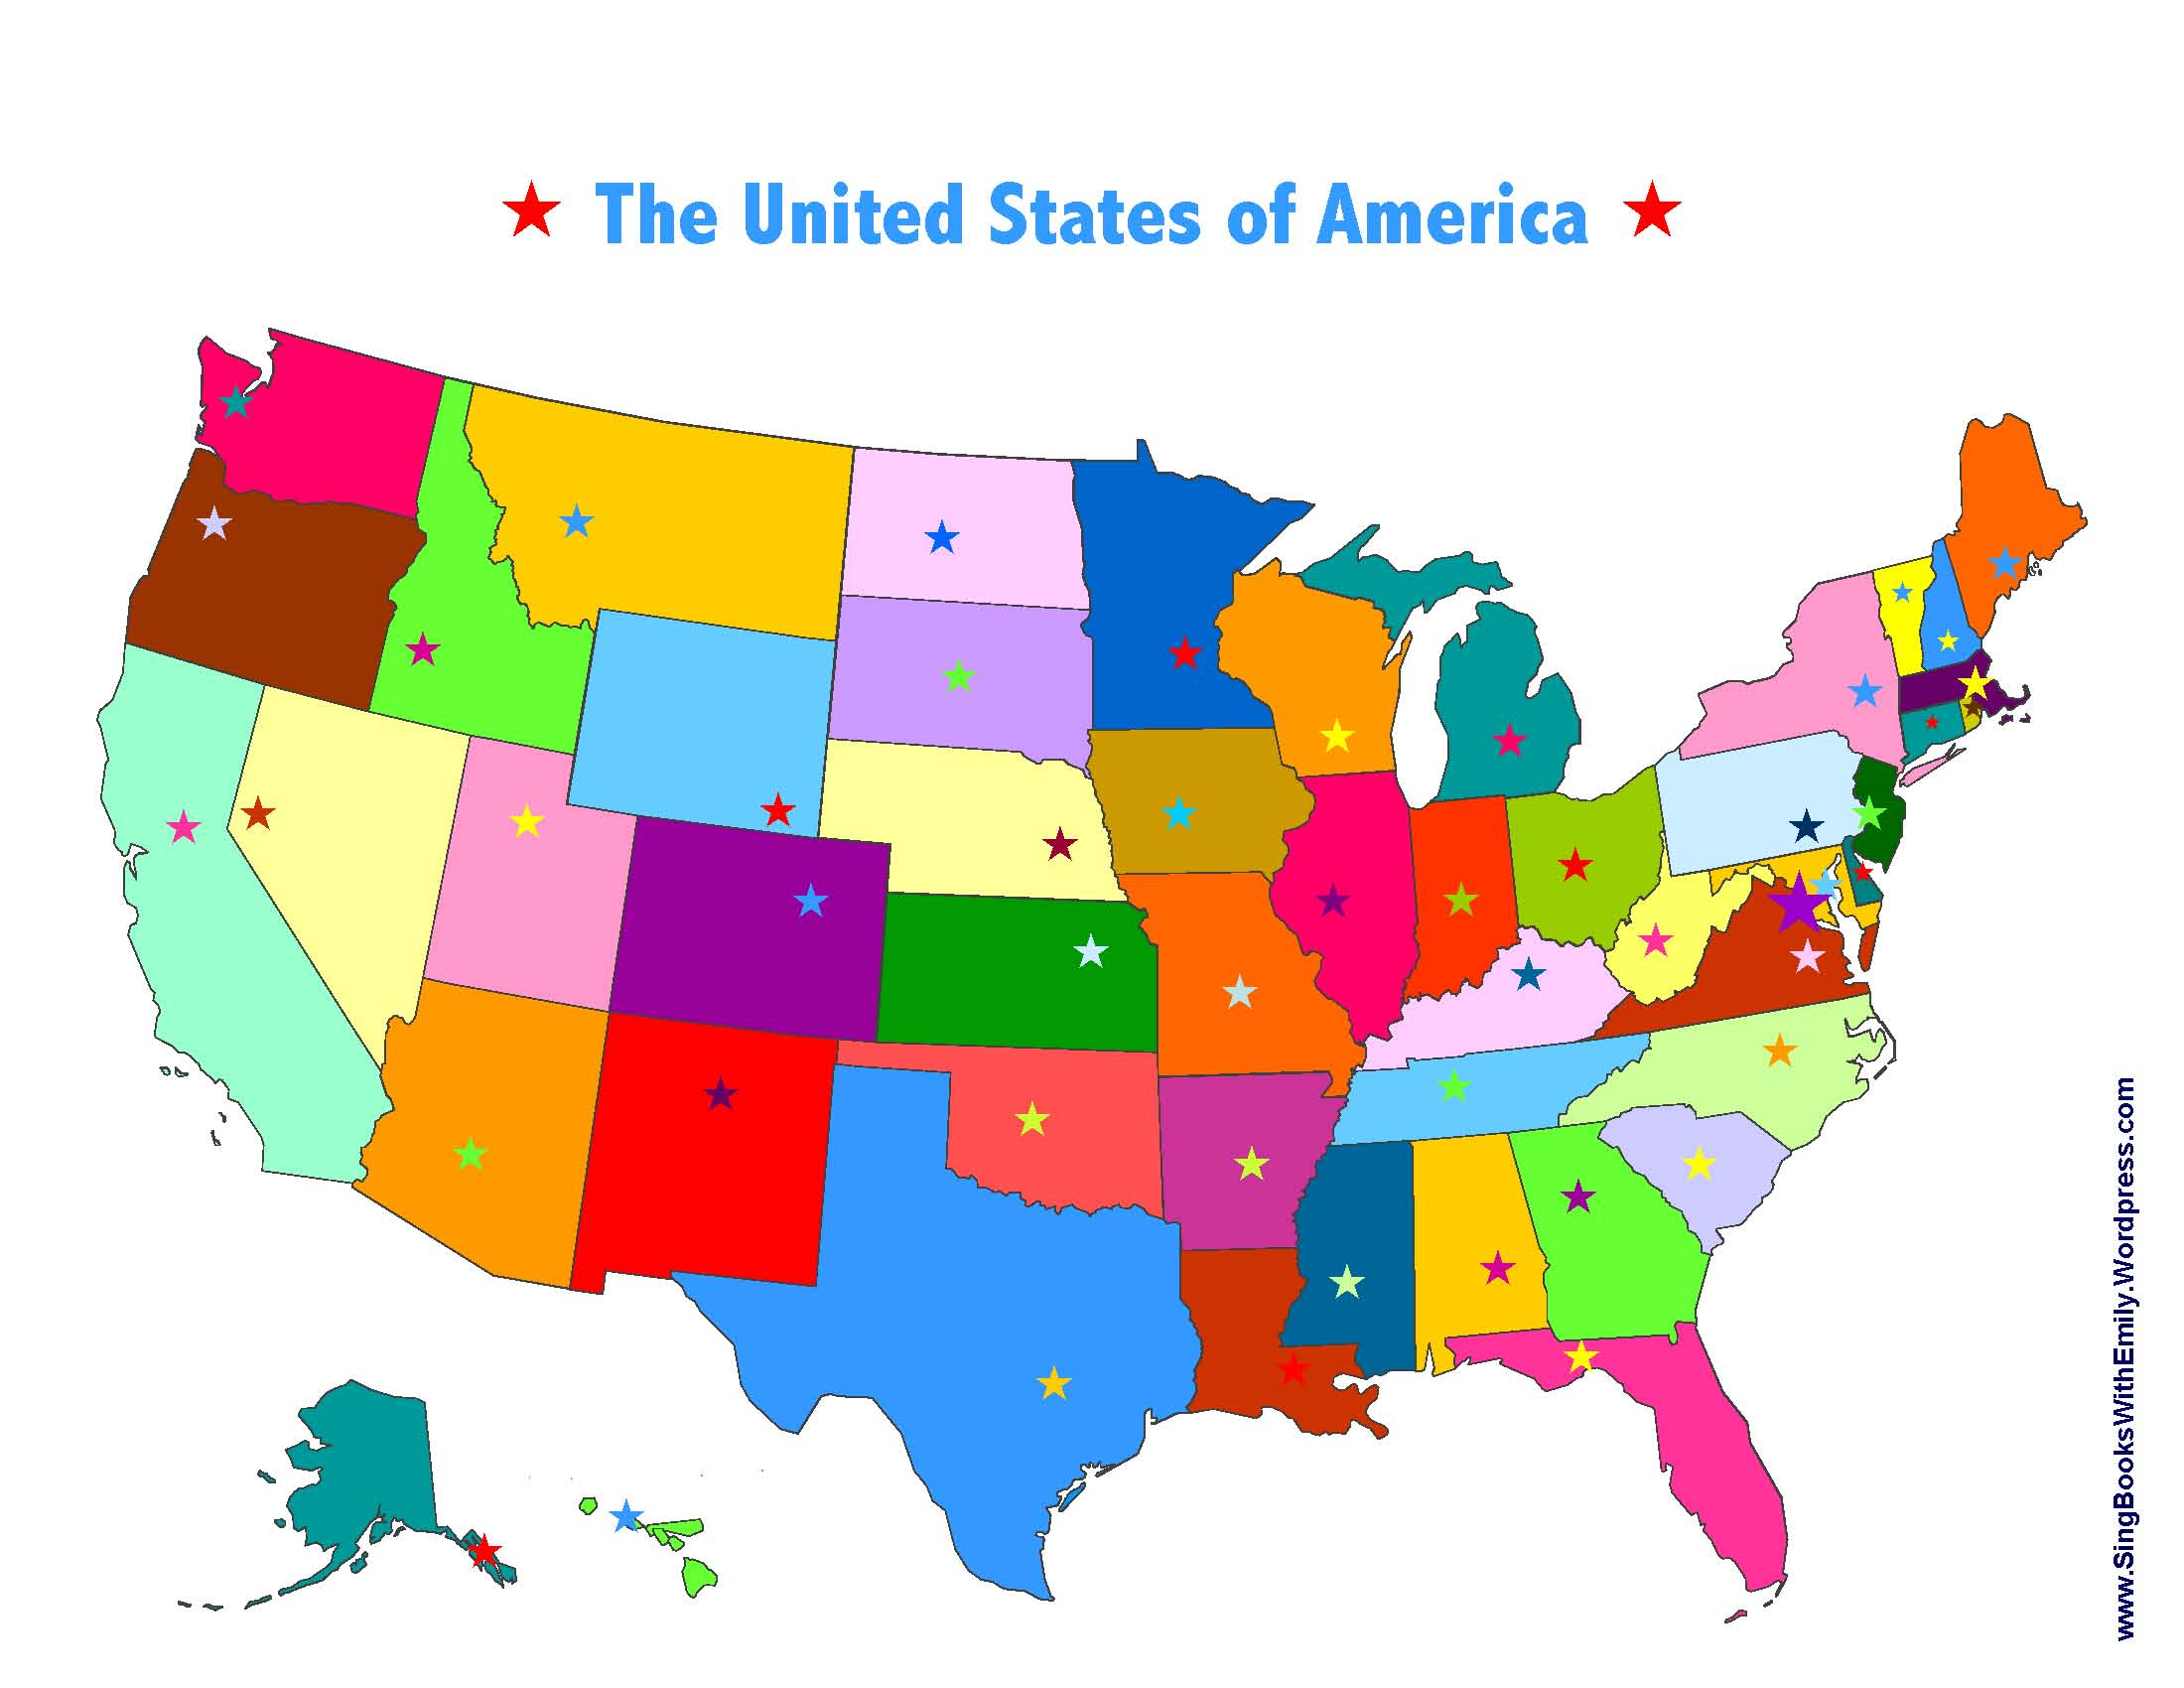 usa map states labeled usa map states labeled us map states